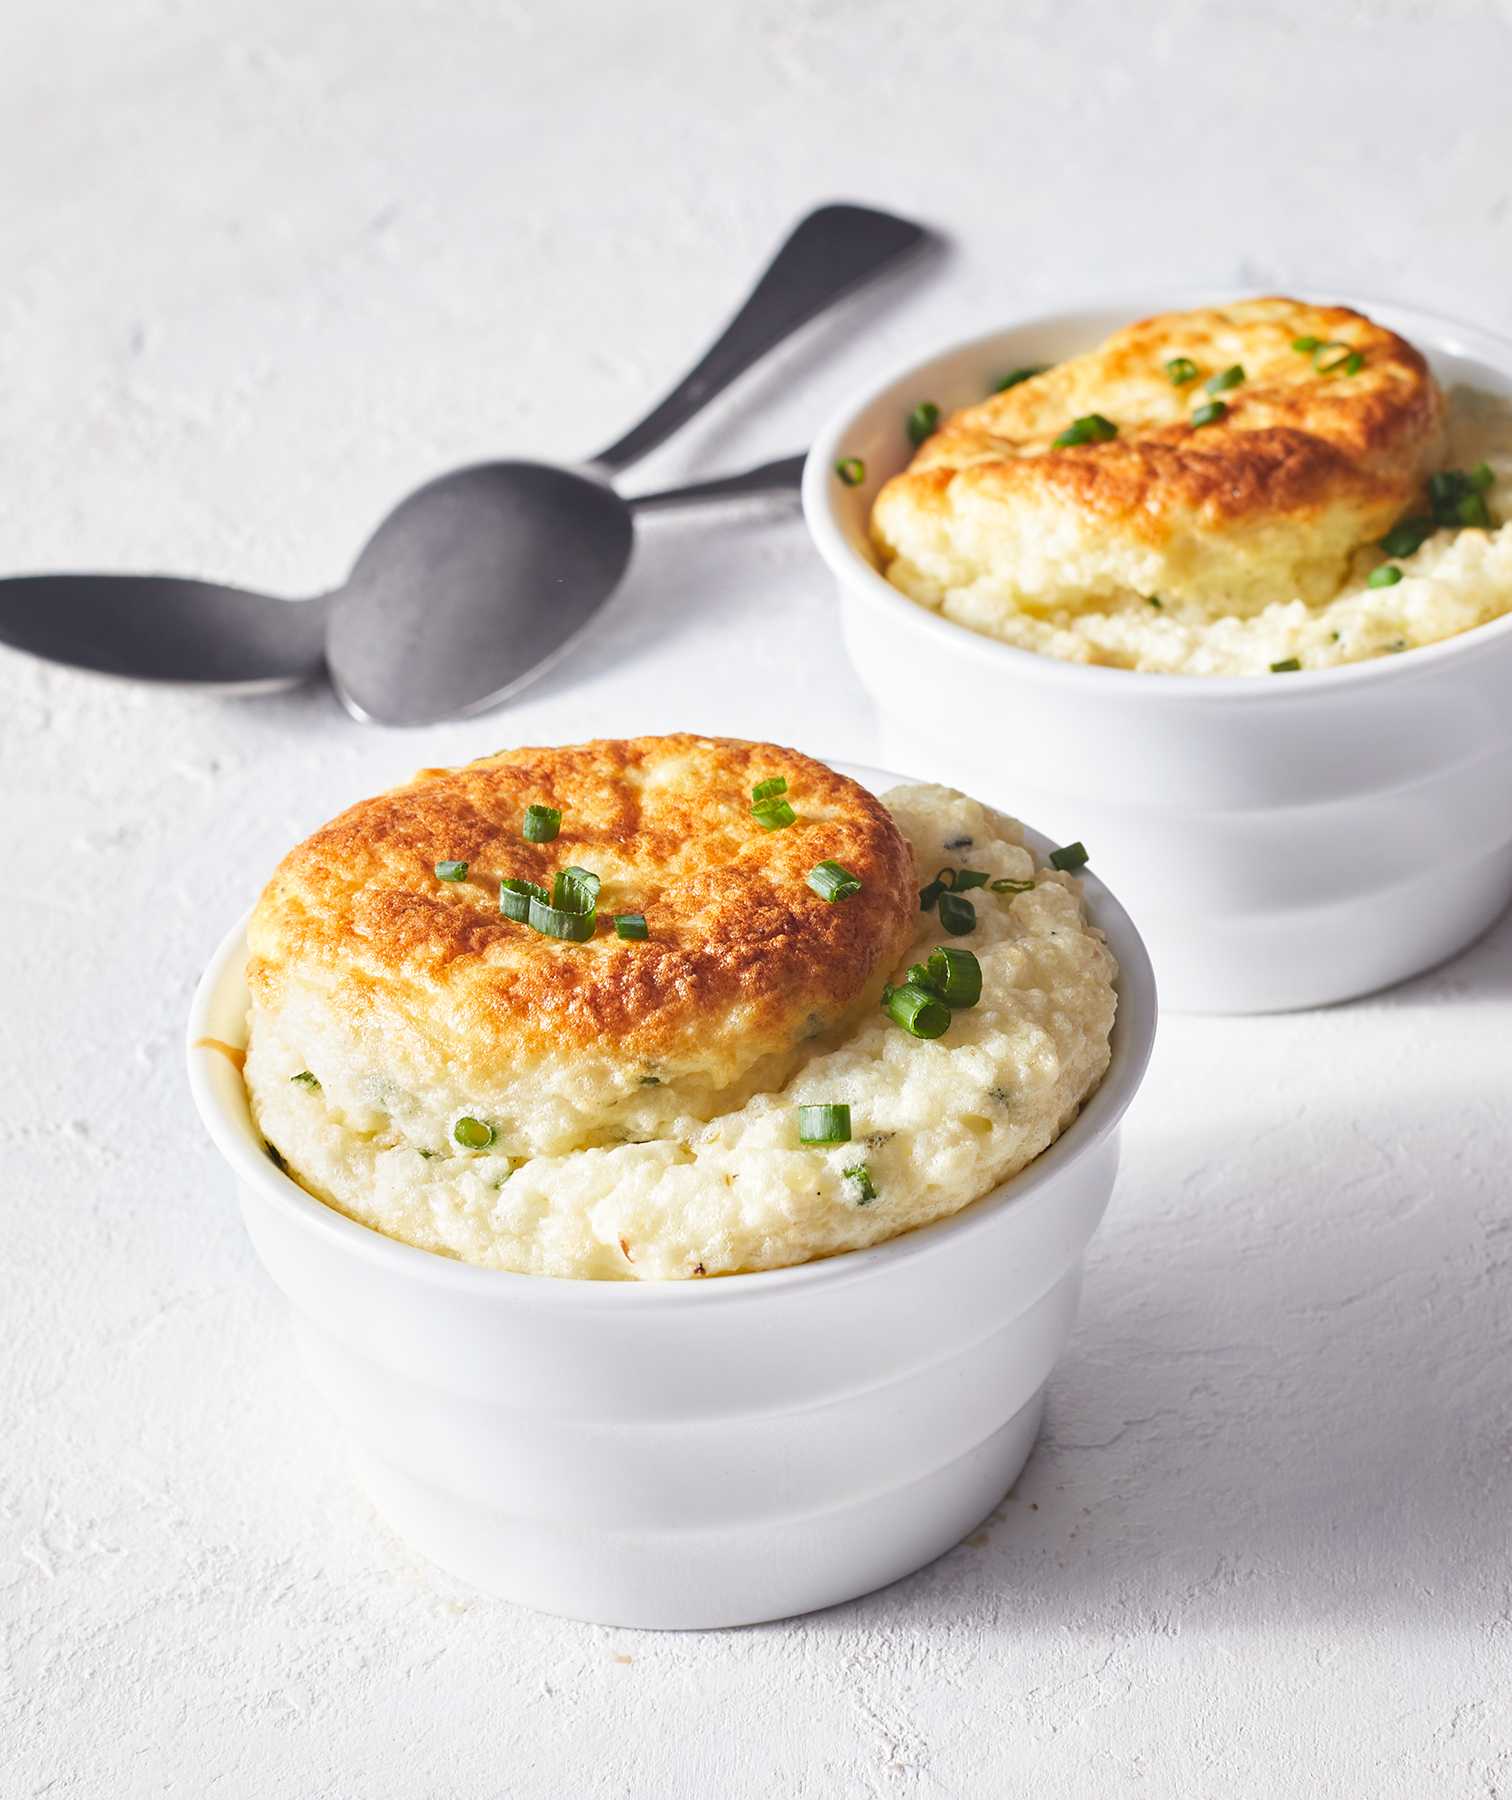 3 Grits Recipes That Prove This Breakfast Staple Is Much More Versatile Than You Think